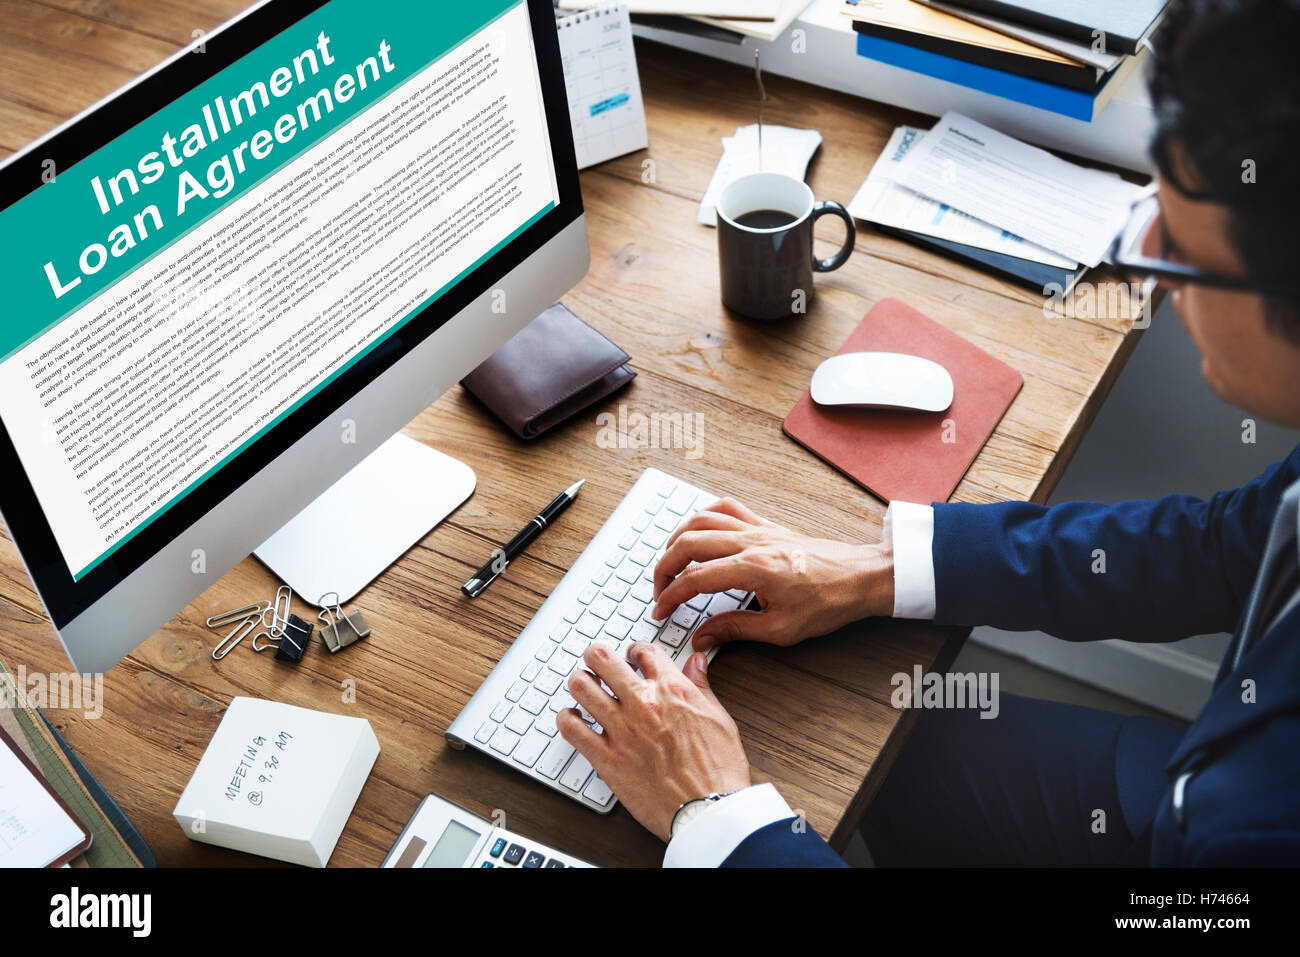 Installment Loan Agreement Credit FInance Debt Concept - Stock Image